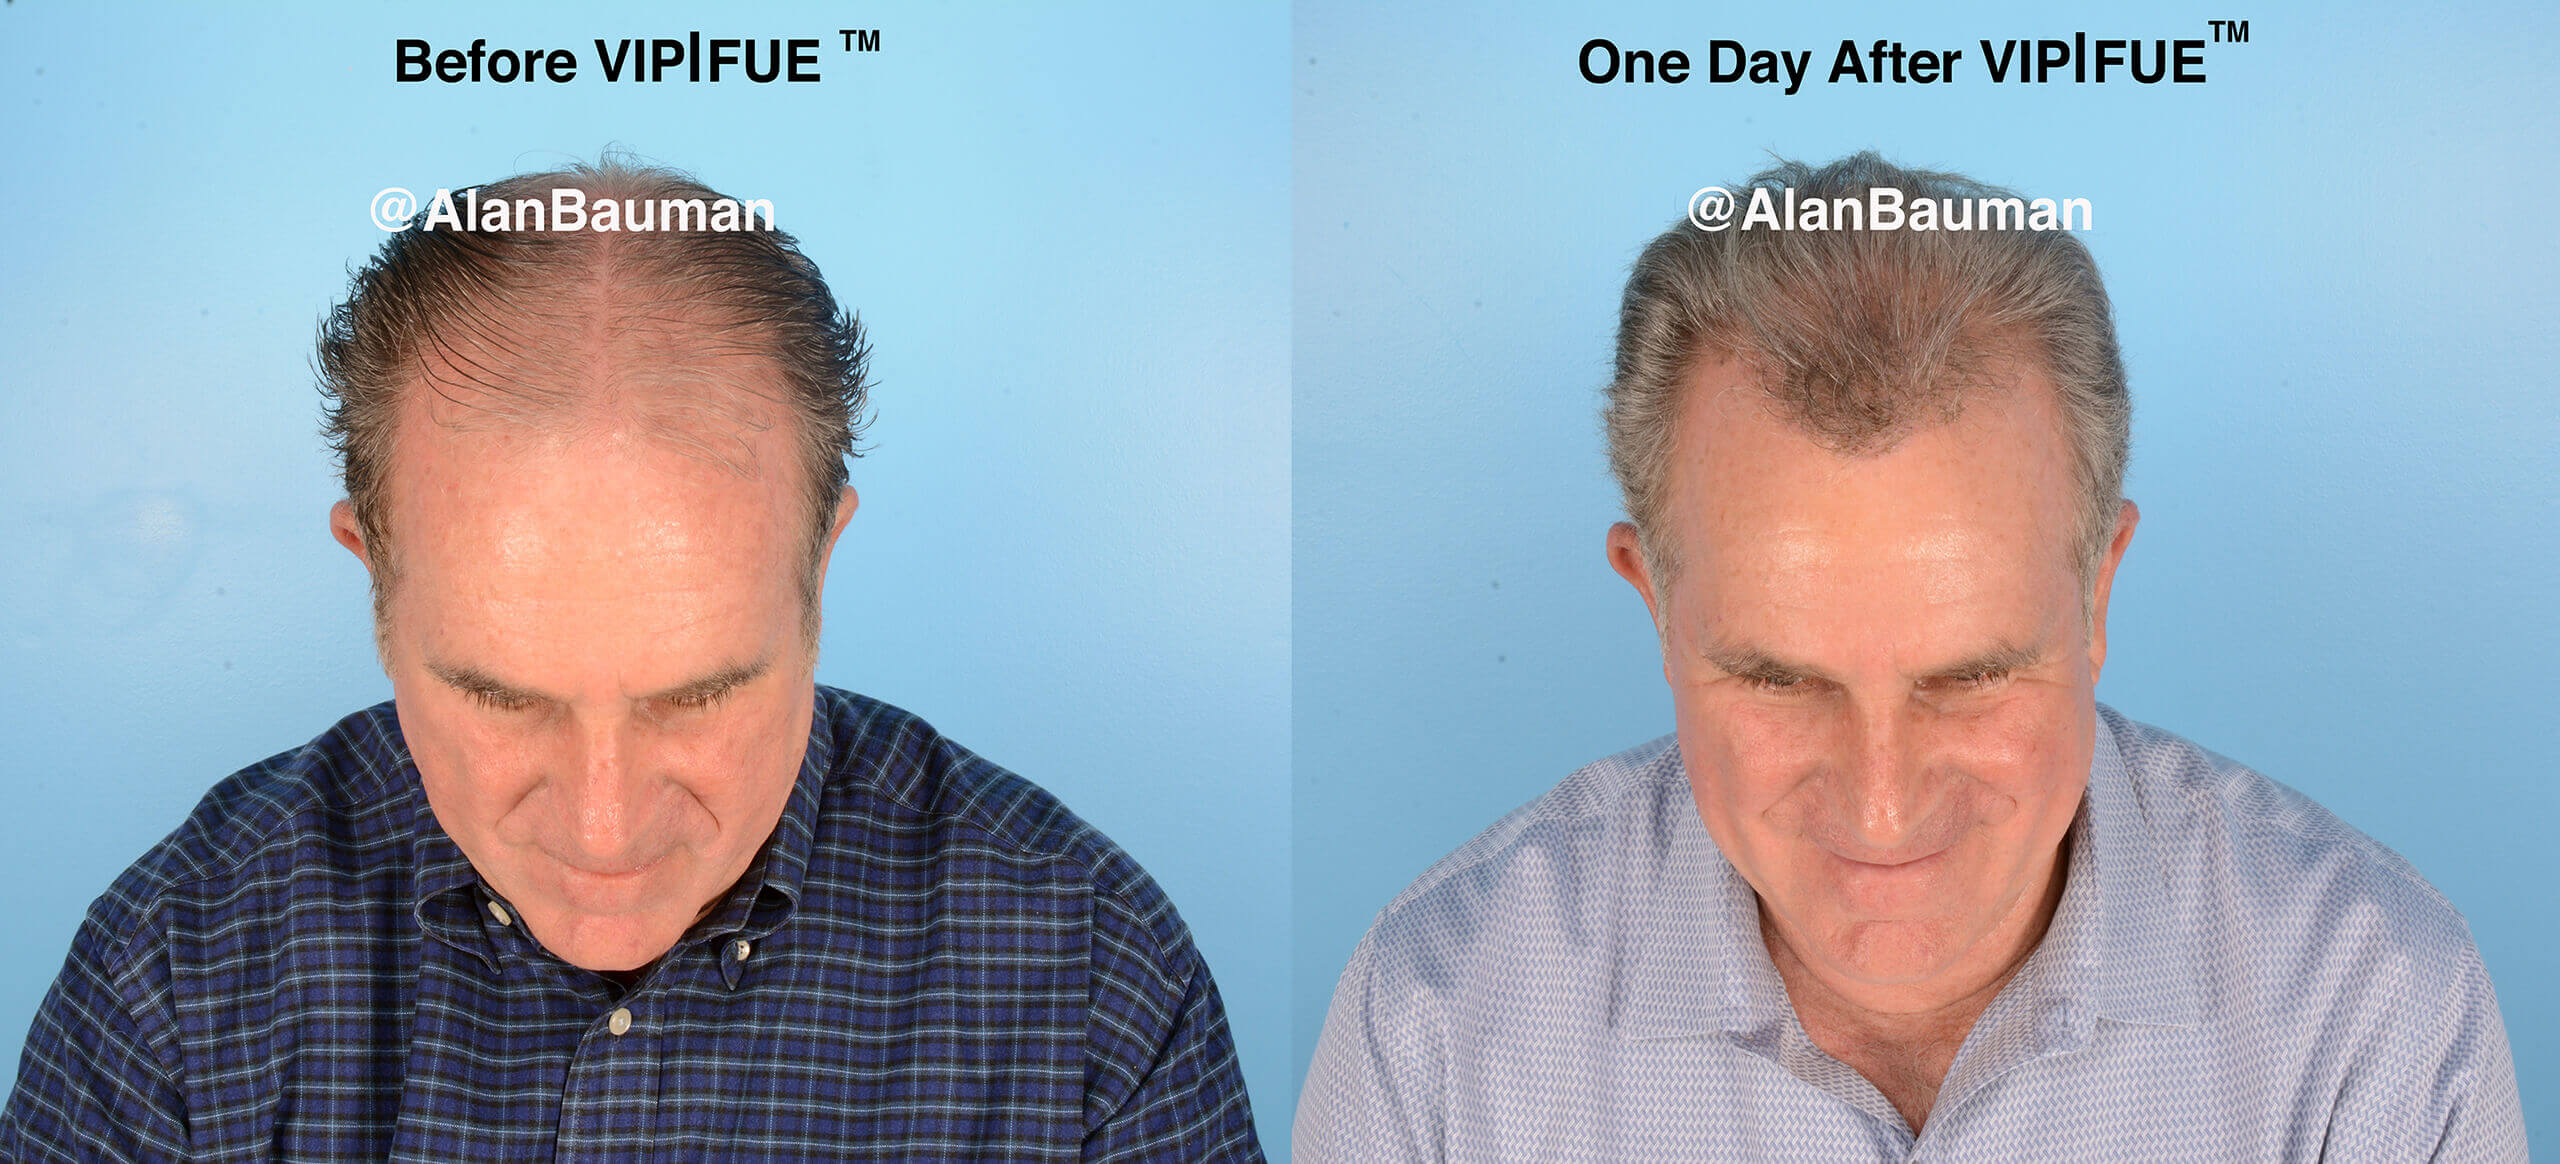 vip fue before after VIP|FUE™ No Shave Long Hair Preview Hair Transplant